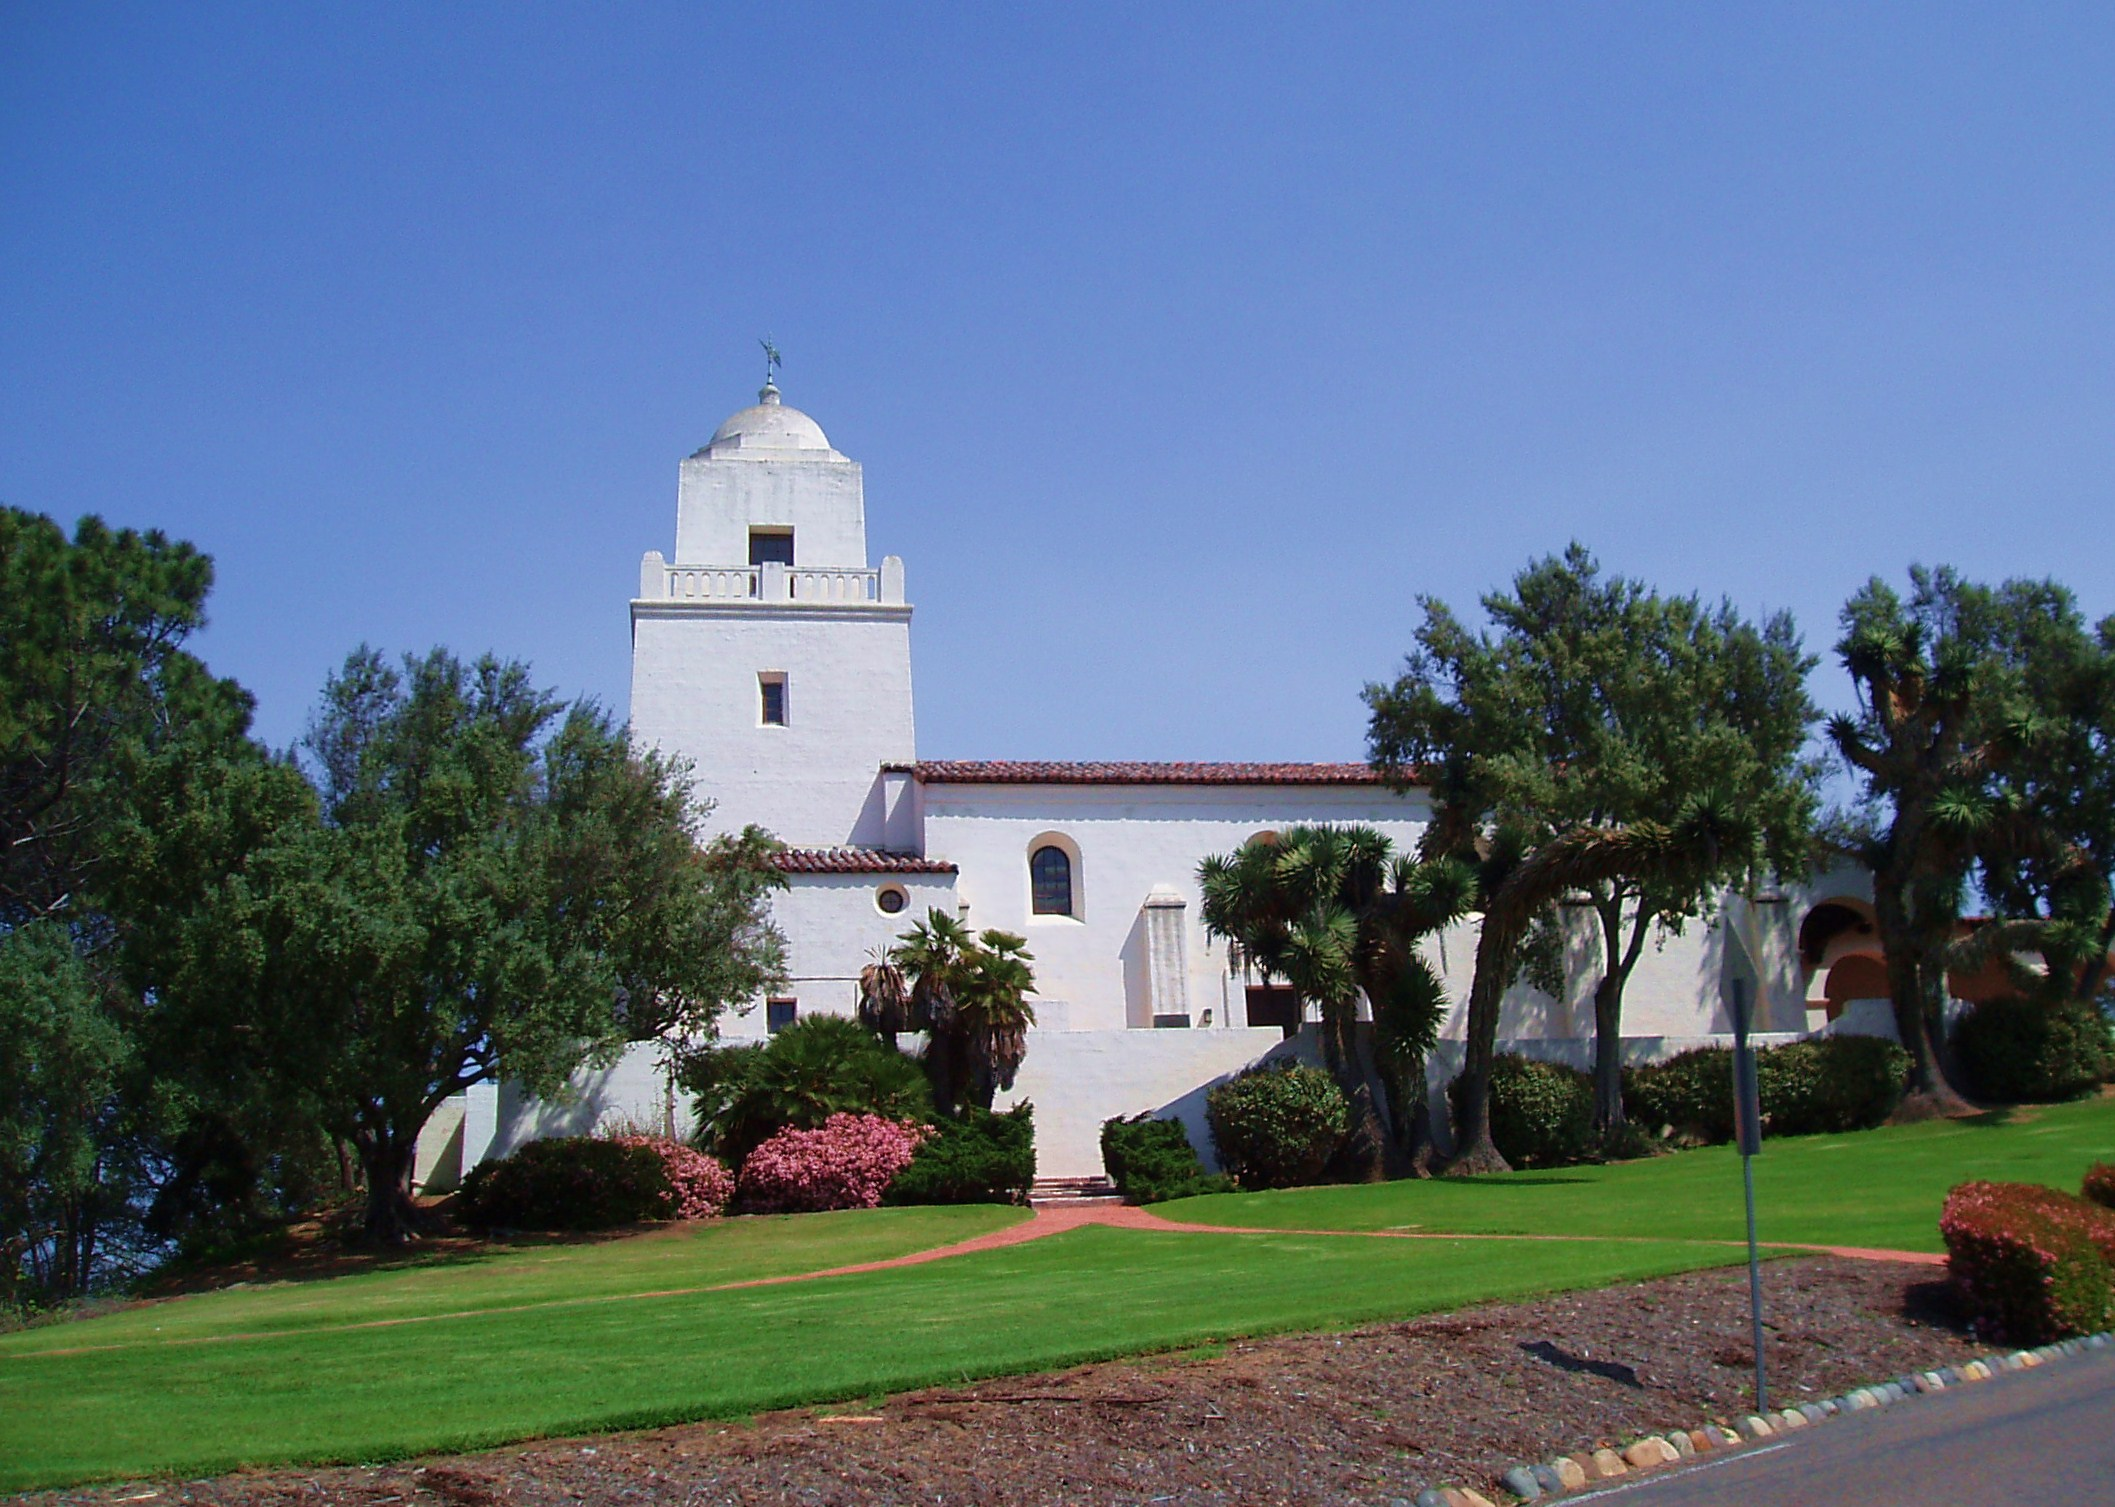 Another view of the Junípero Serra Museum